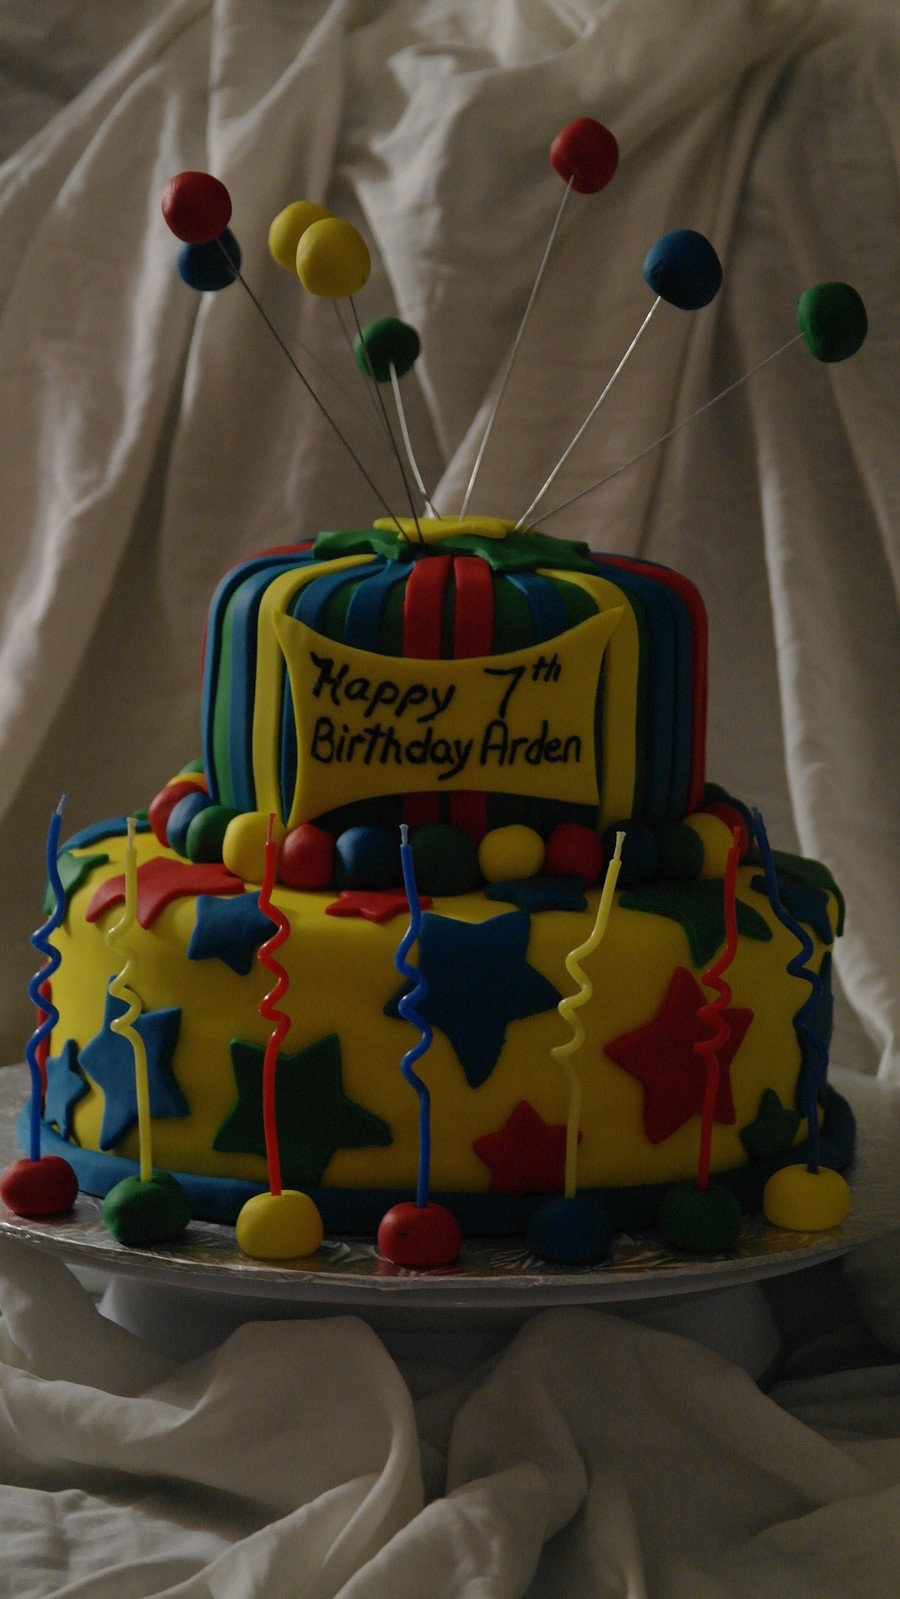 Groovy Primary Colours For A 7 Year Old Boy Cakecentral Com Funny Birthday Cards Online Hetedamsfinfo